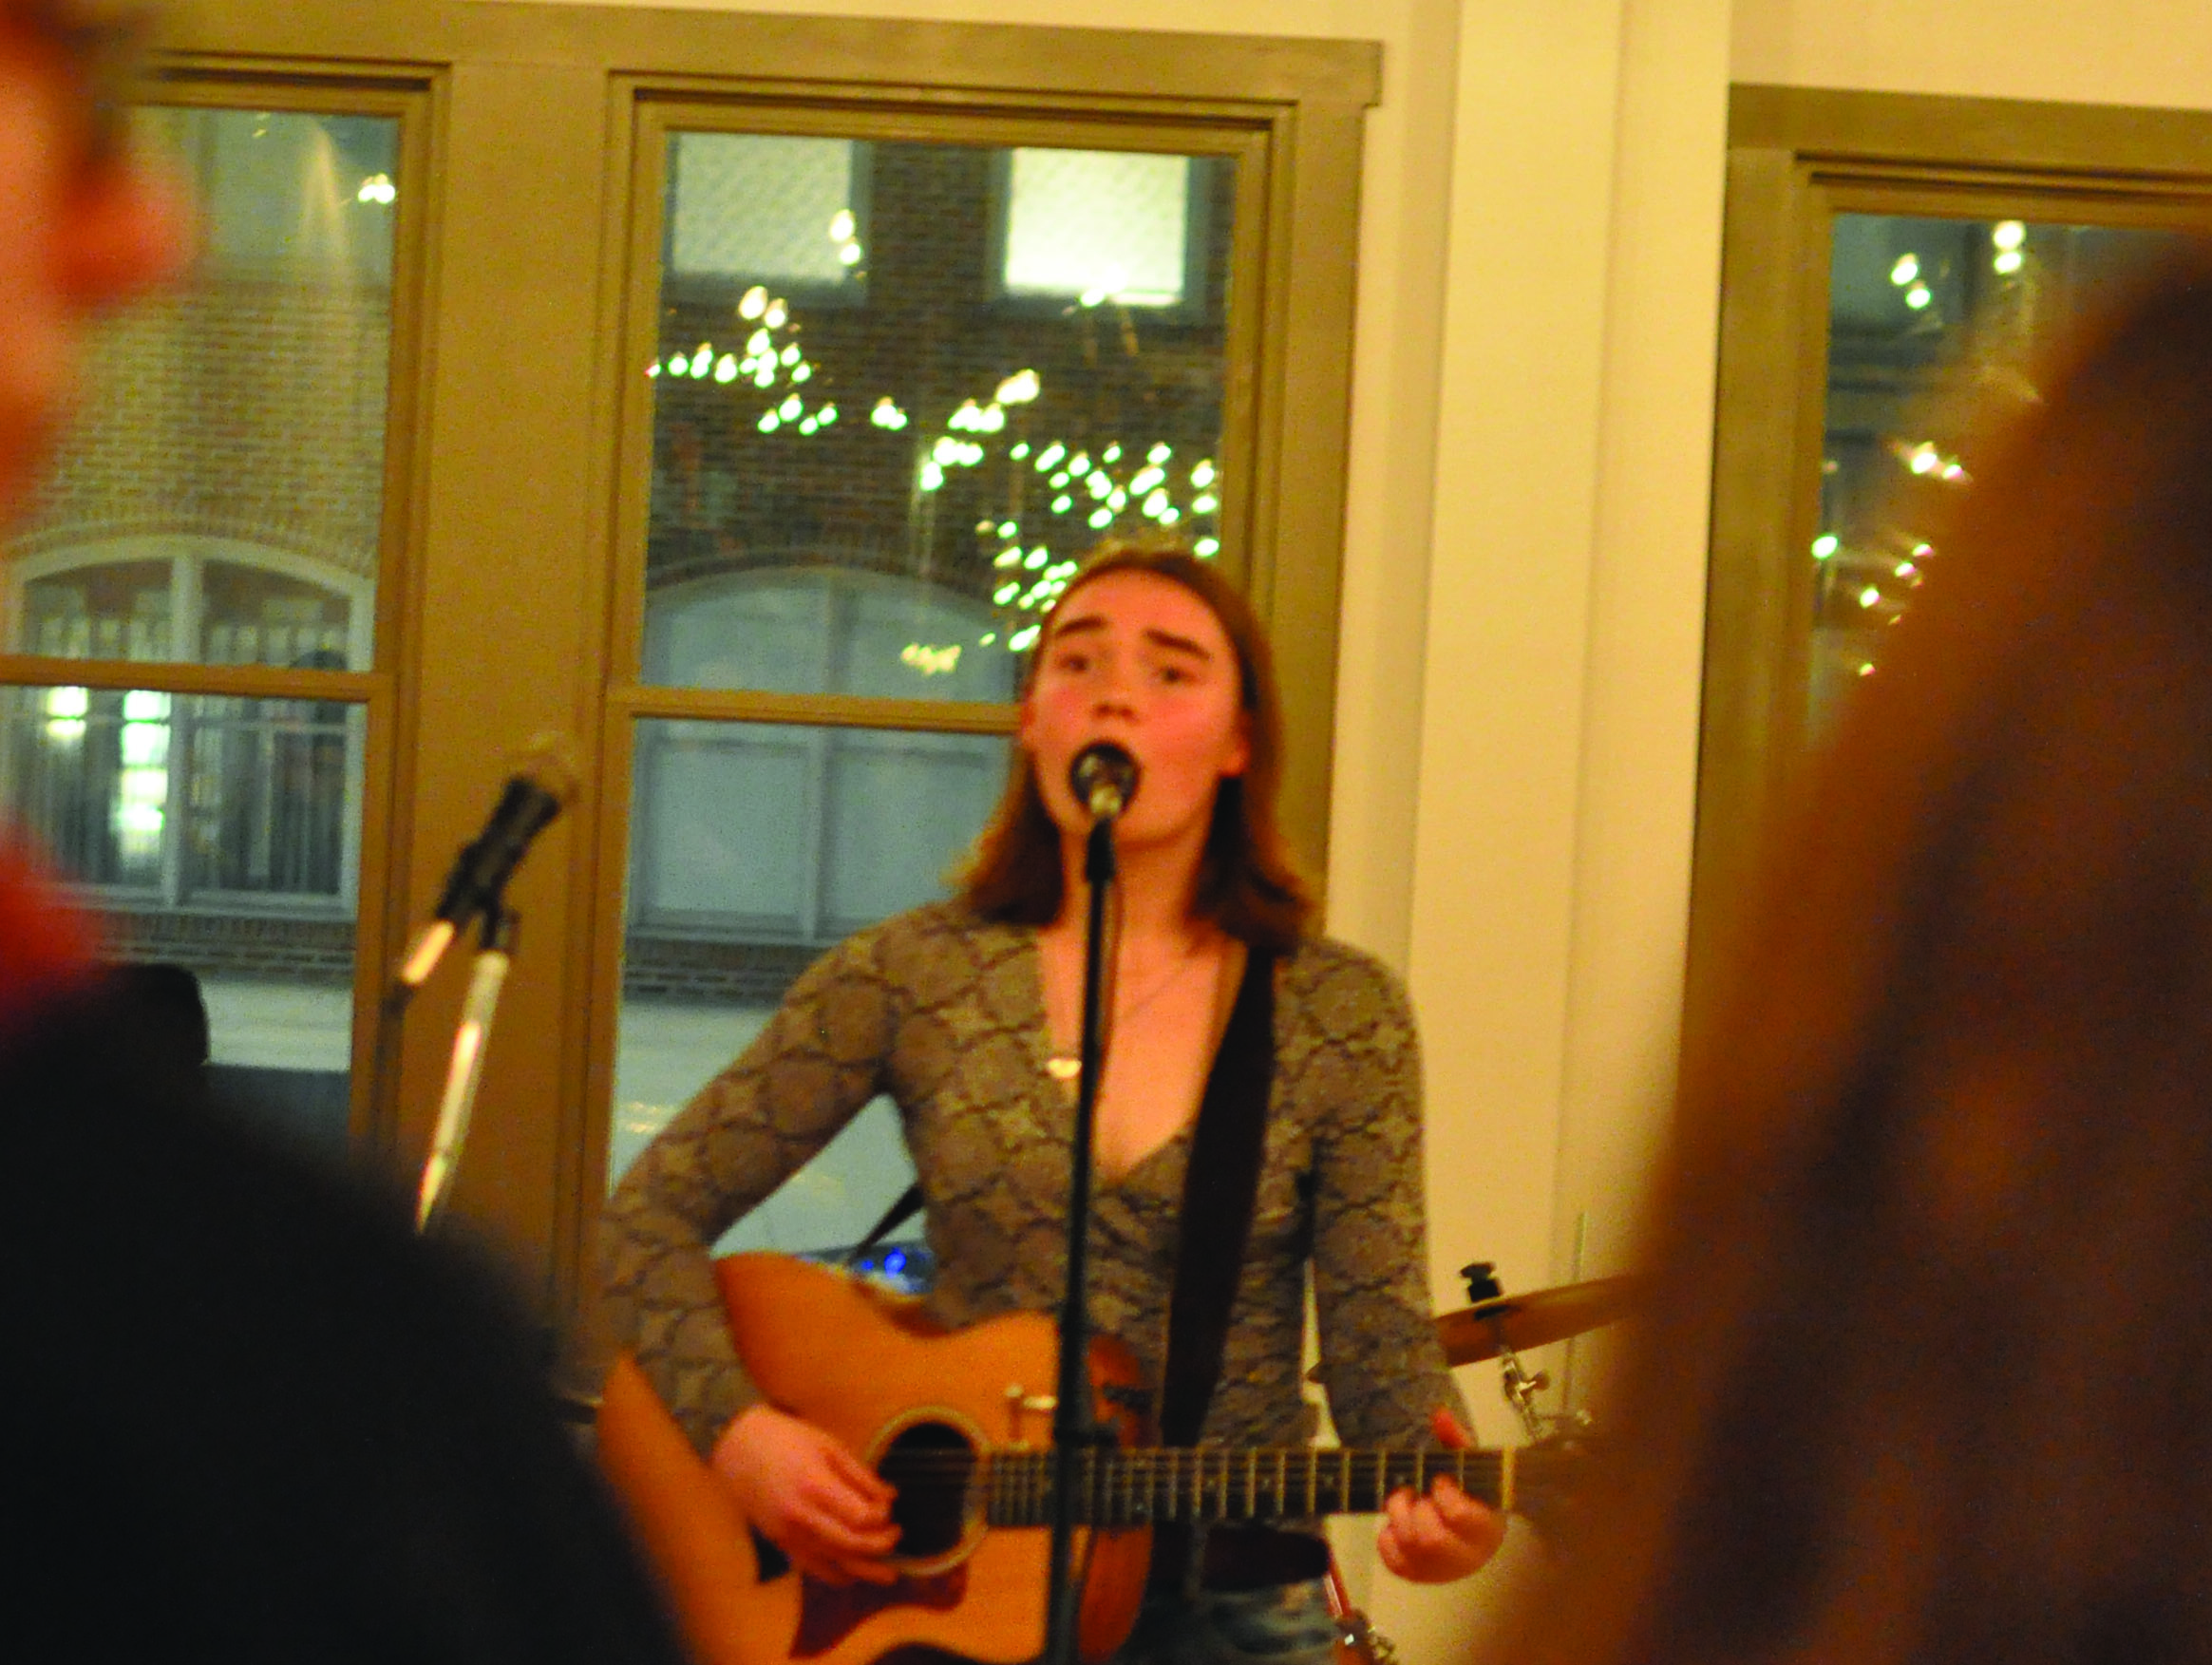 Spoon Market hosts College bands and performers